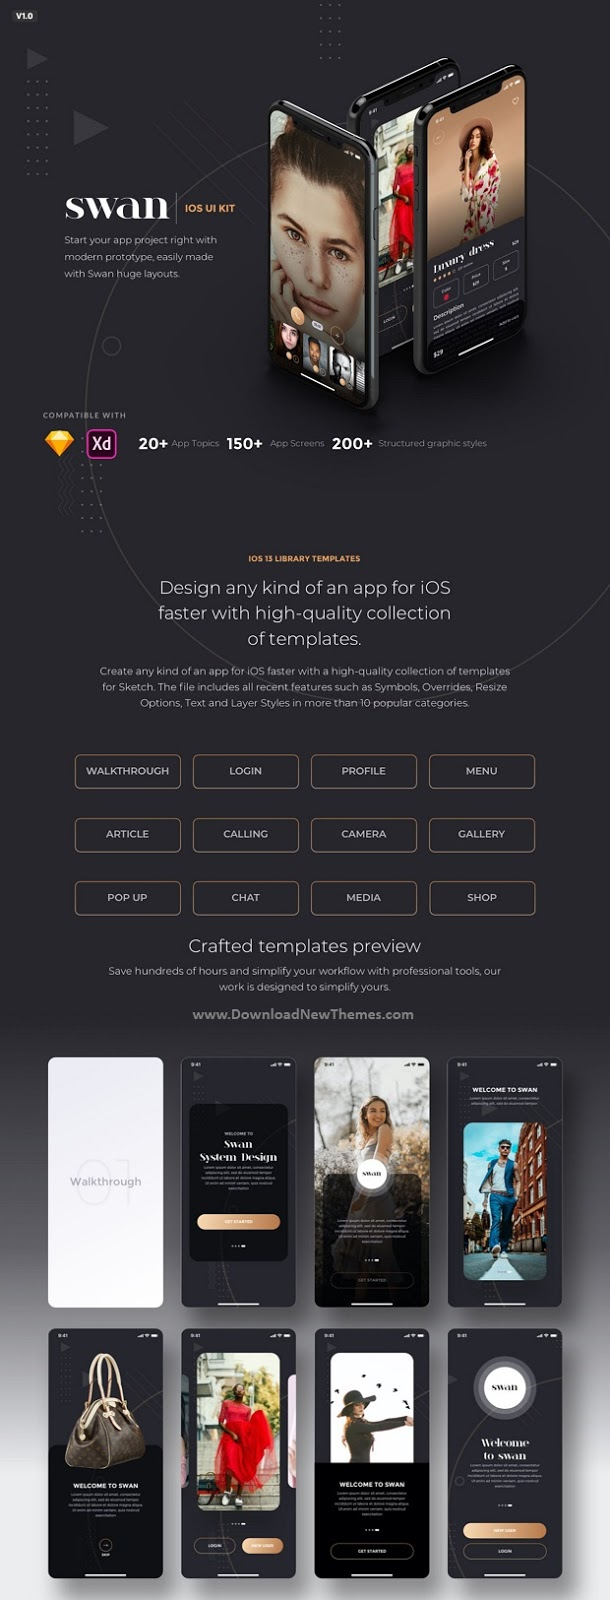 mobile app sketch template